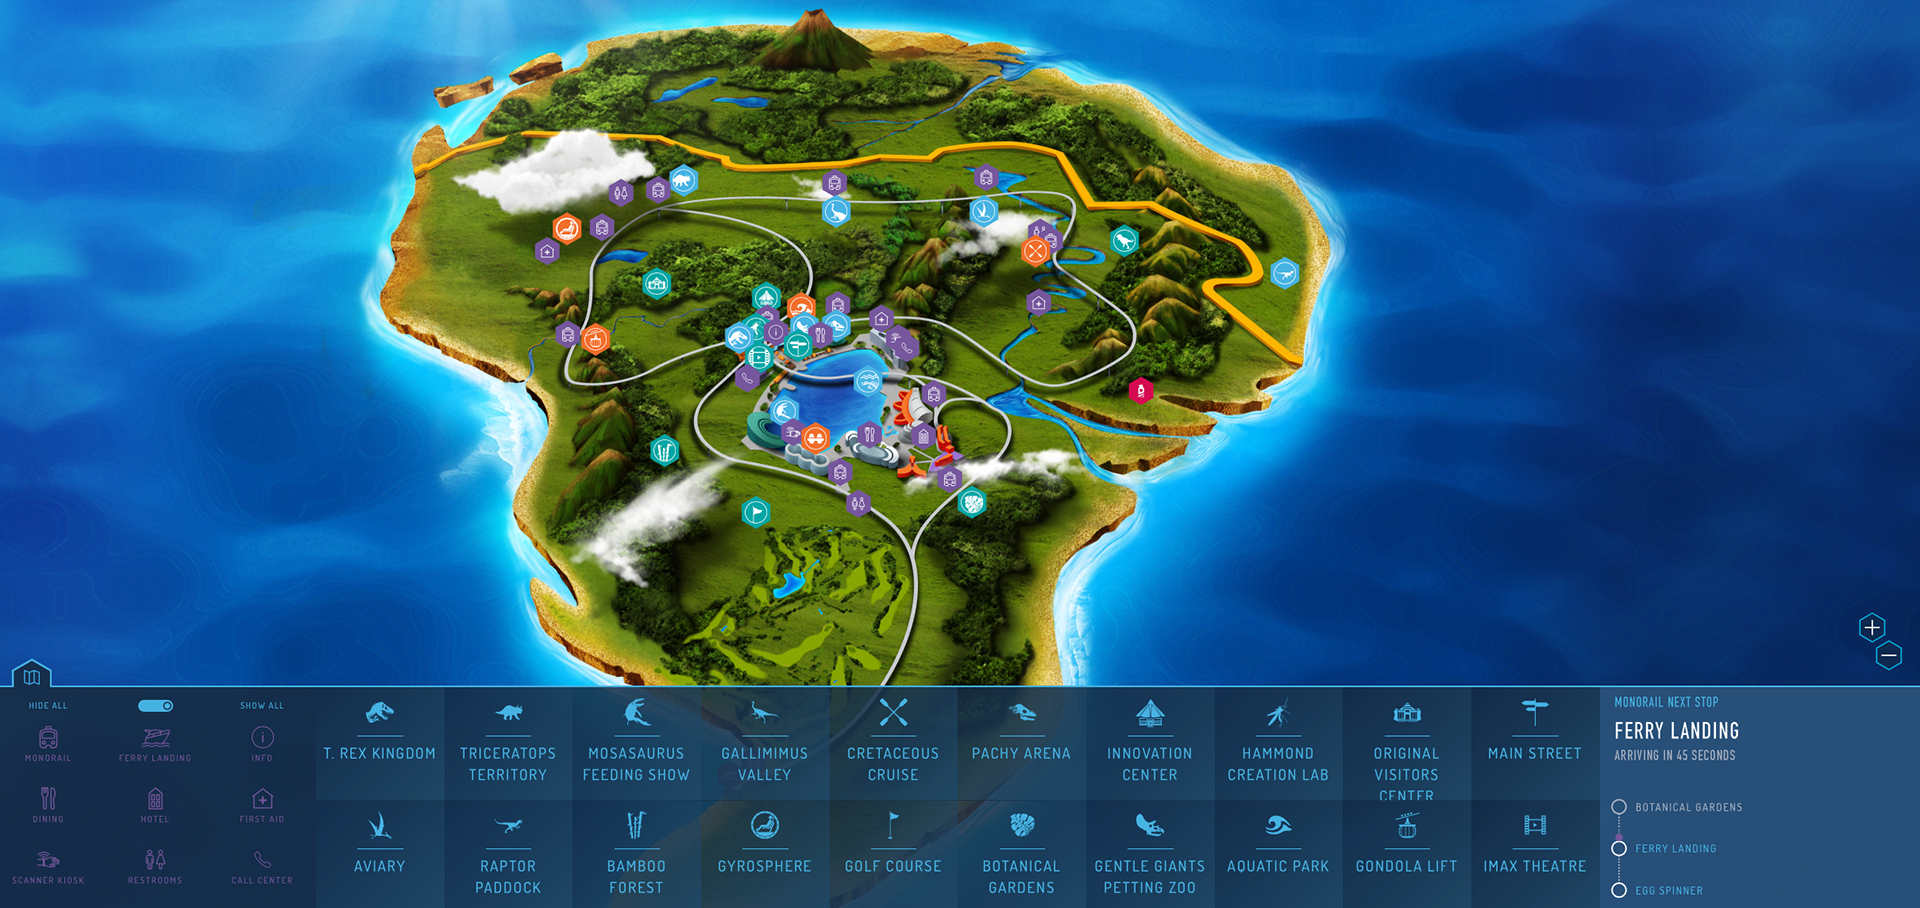 Sean salter jurassic world i illustrated the interactive map which has found its way into consumer products fan art and was even used and rescind for the lego jurassic world video gumiabroncs Choice Image